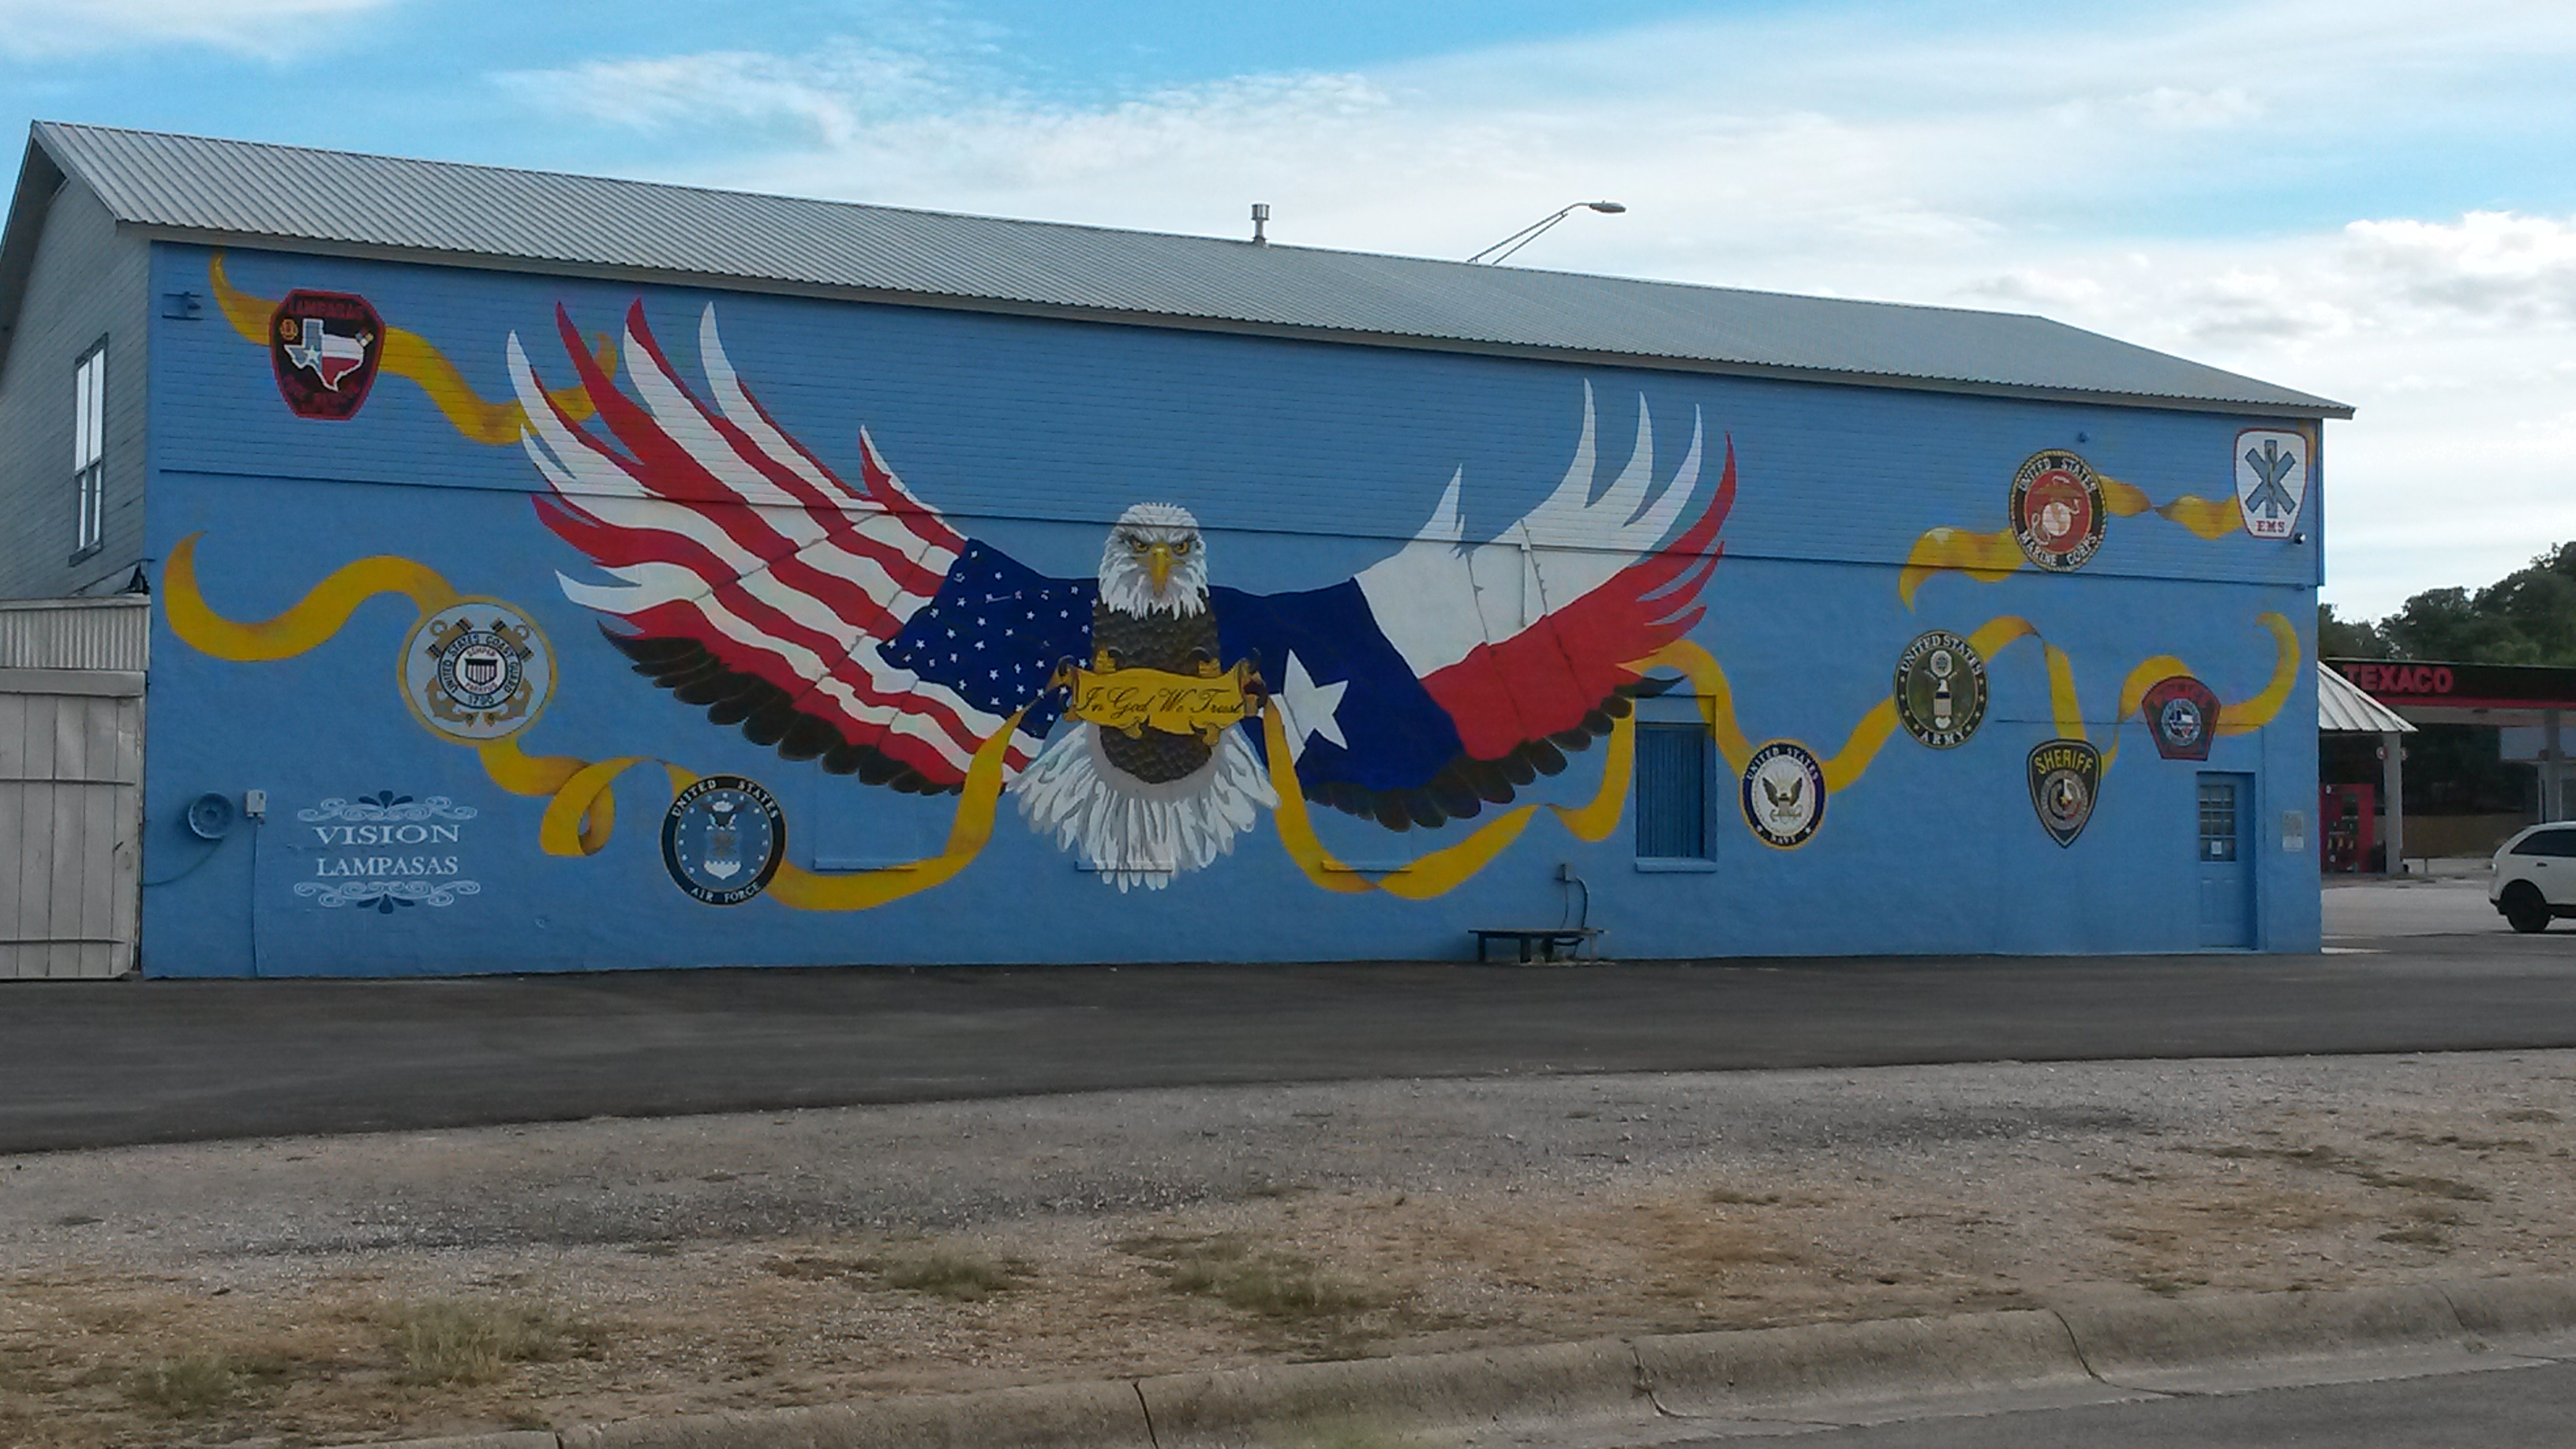 Military-themed painting on building.